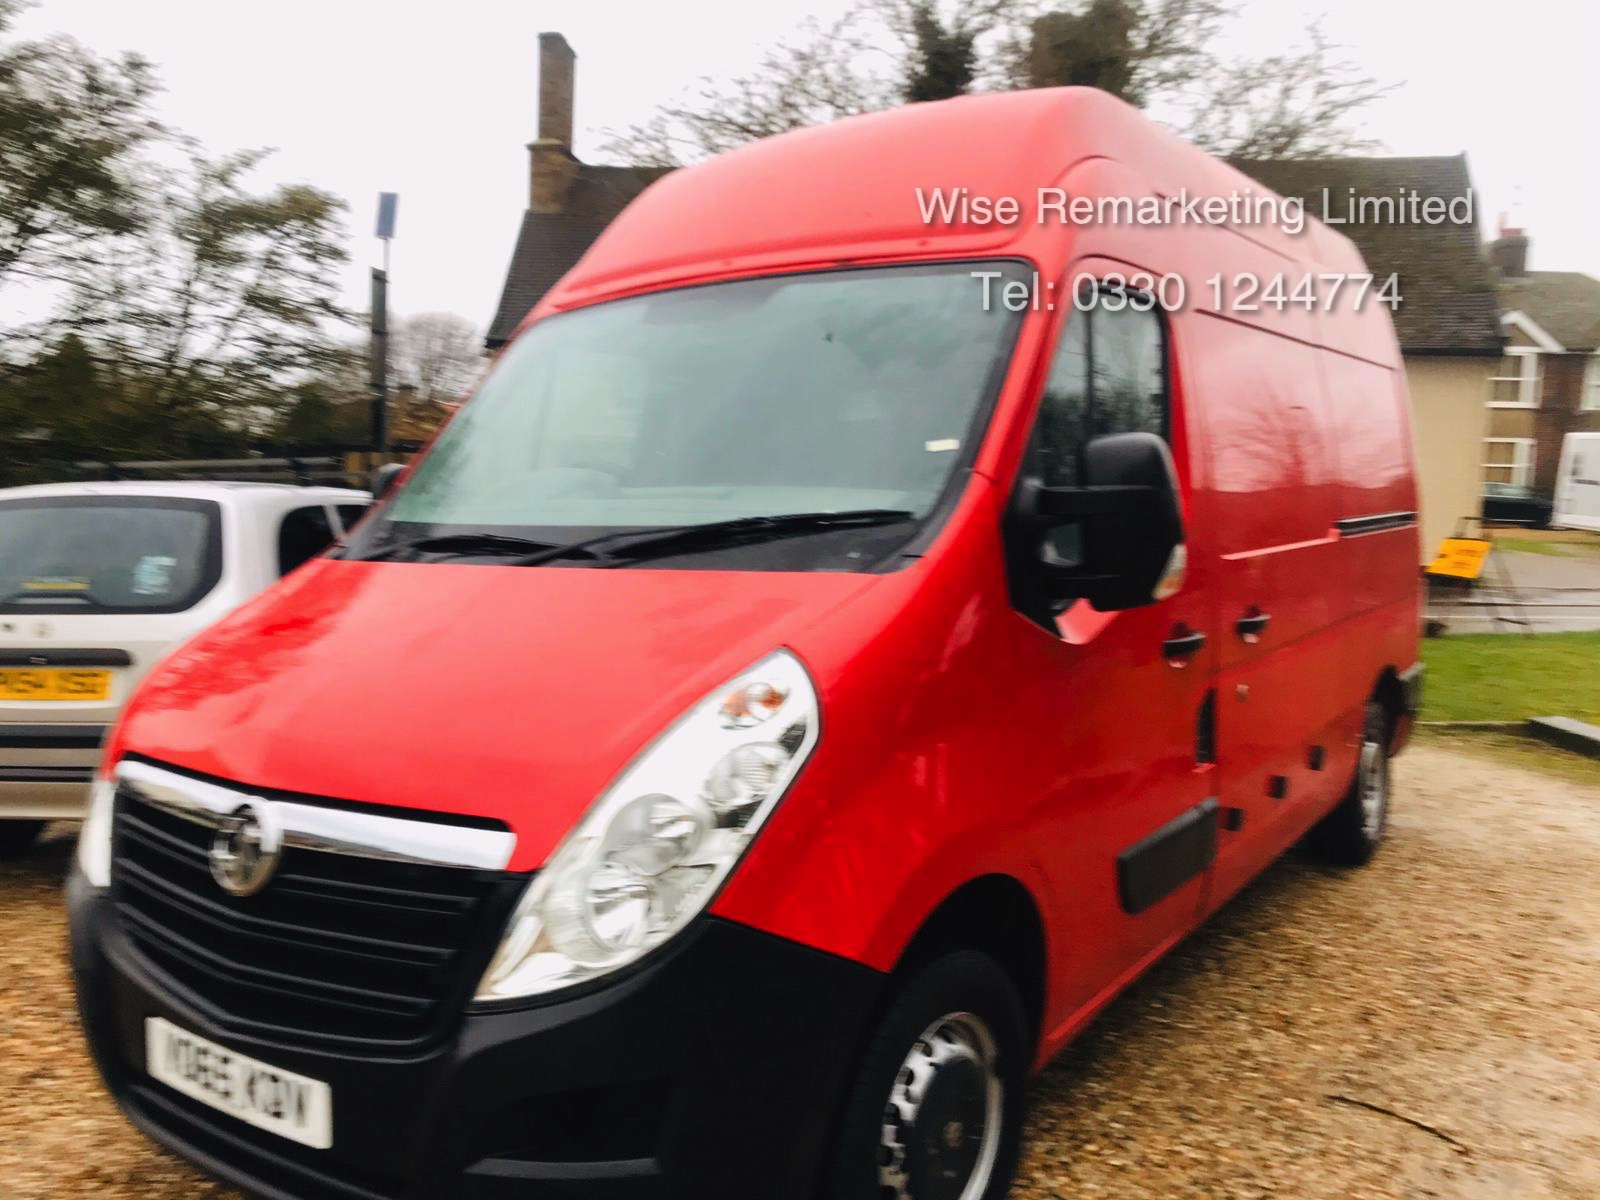 Vauxhall Movano 35 2.3 CDTi BiTurbo EcoFlex **HIGH ROOF** 2016 Model - AIr con - 1 Owner - RARE - Image 3 of 21